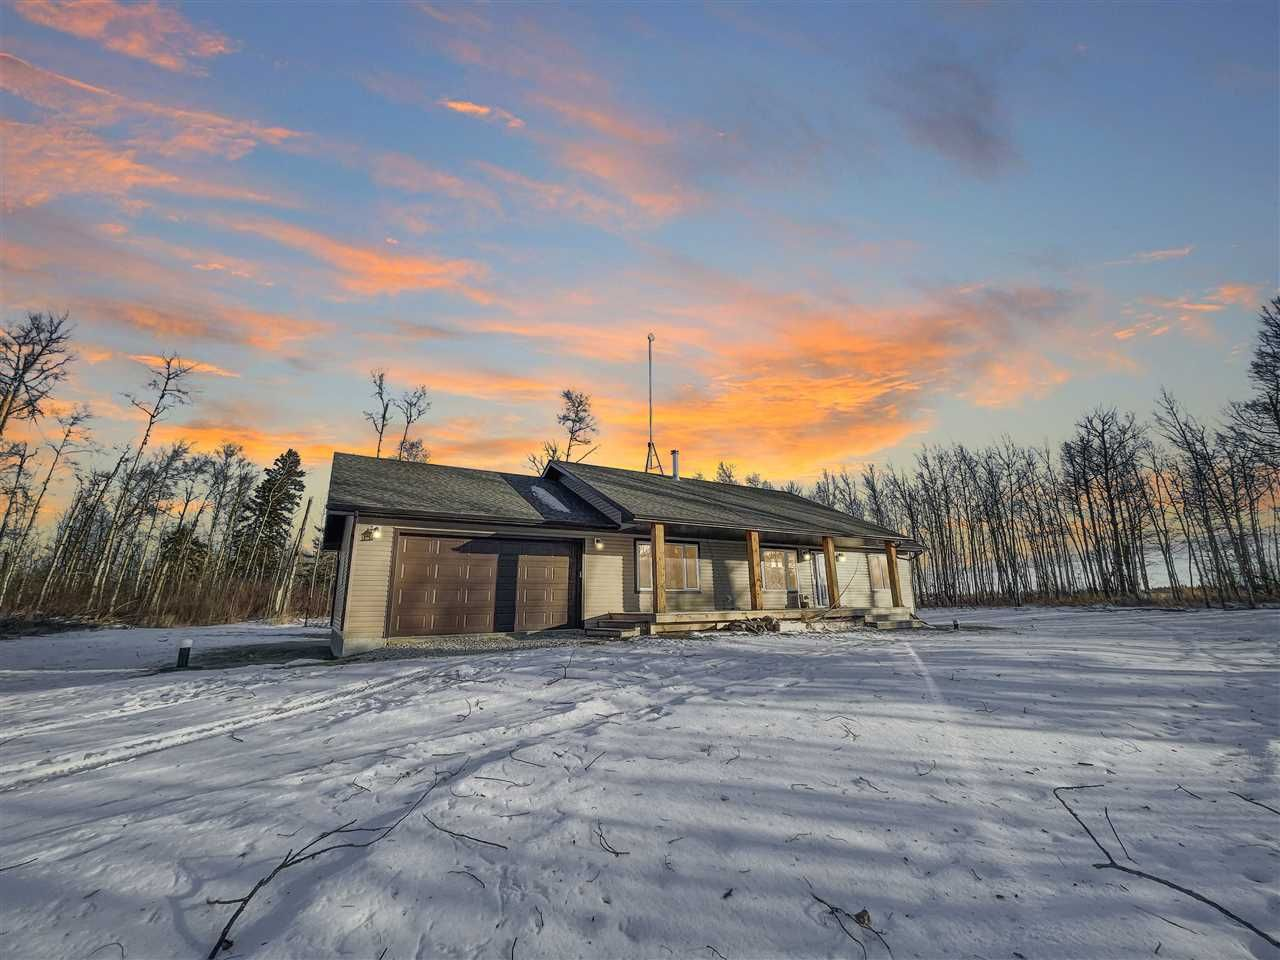 Main Photo: 13 55504 RGE RD 13: Rural Lac Ste. Anne County House for sale : MLS®# E4229579